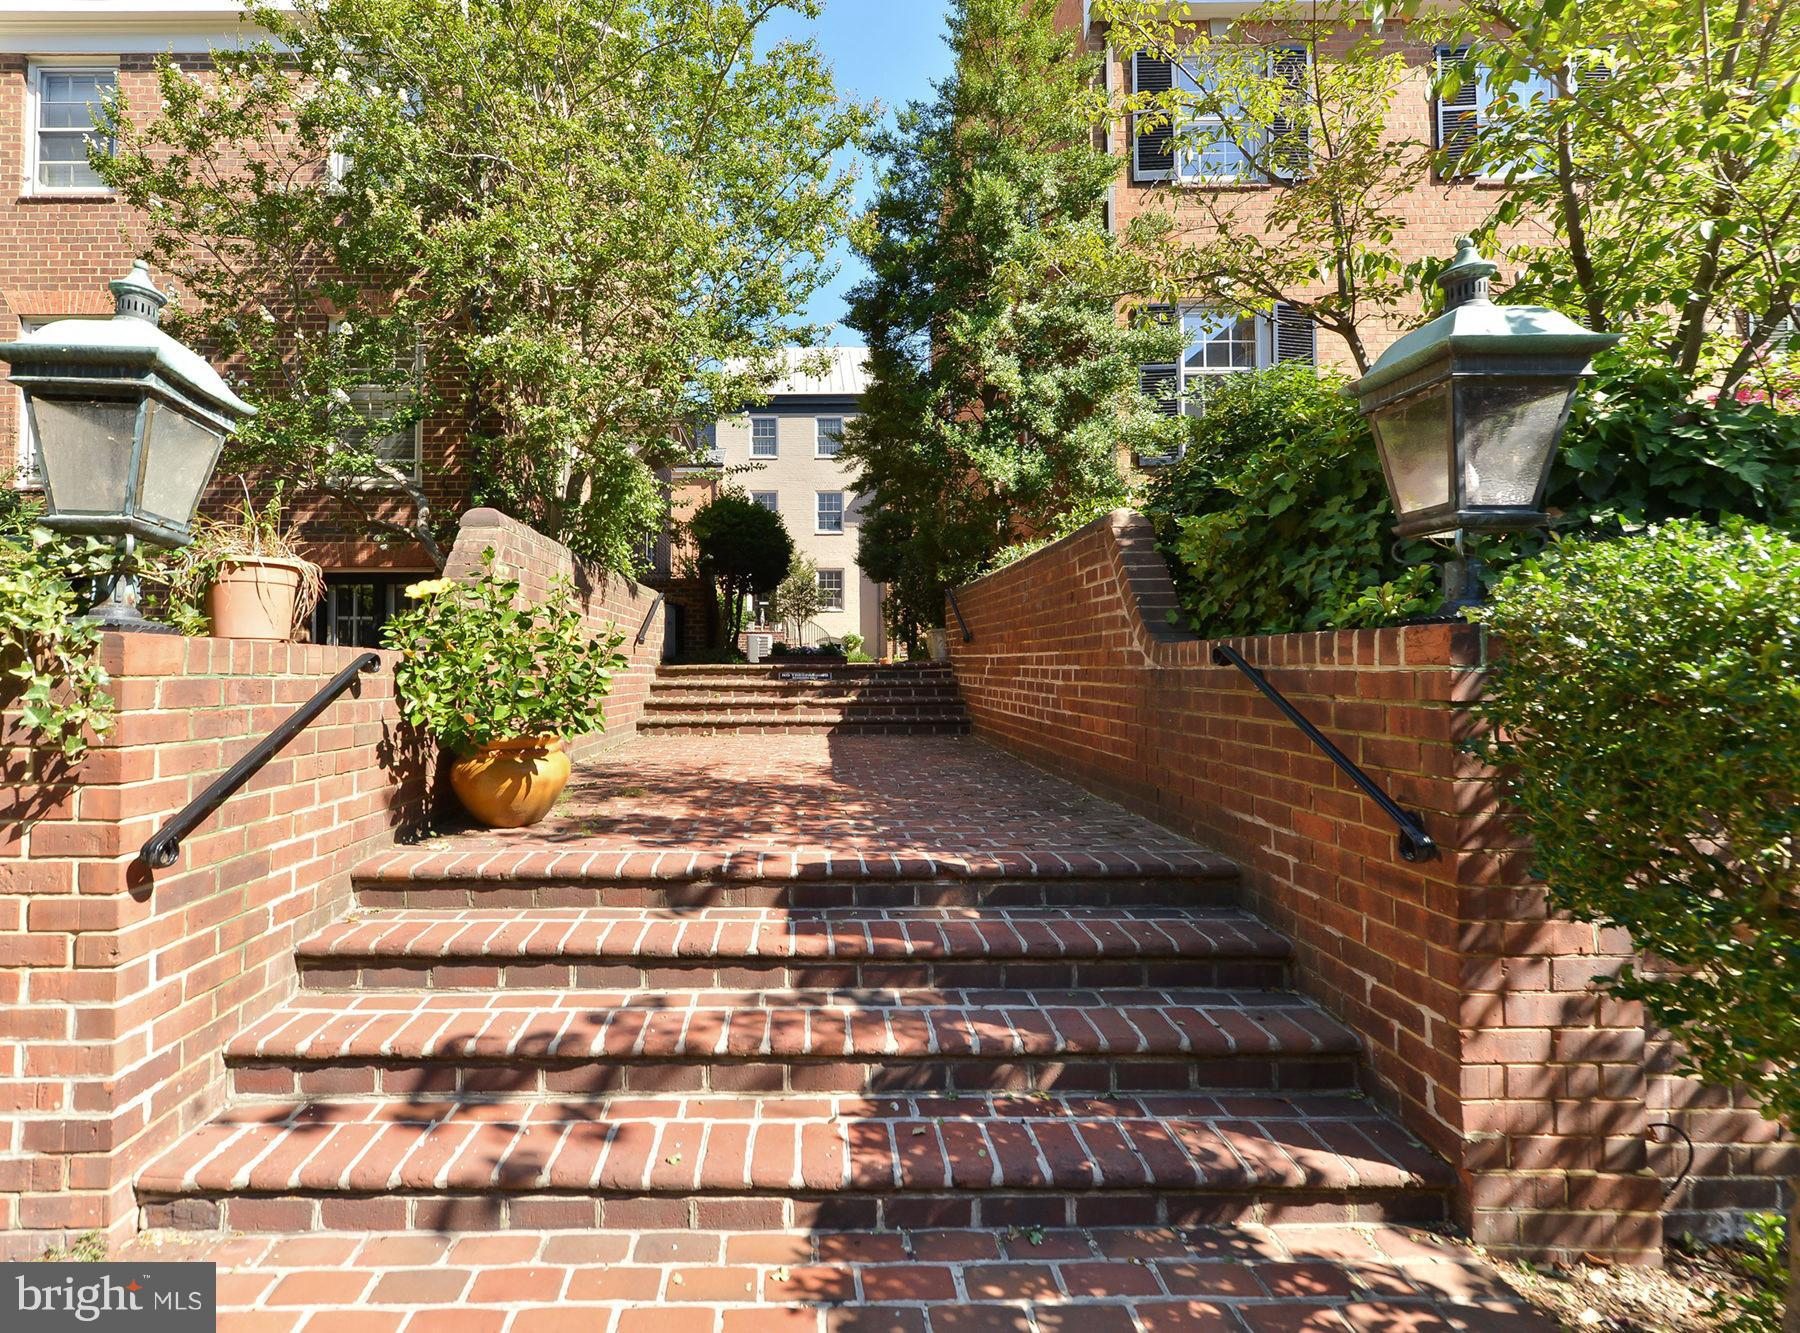 A Private Mews (small enclave of townhomes),this exceptionally bright END UNIT provides 2,970 elegant square feet, upgraded kitchen with Bosch appliances, PARKING #17, two newly lined fireplaces, large walled garden/patio.  Steps to shops, grocery, restaurants and transportation.  Off-street parking!